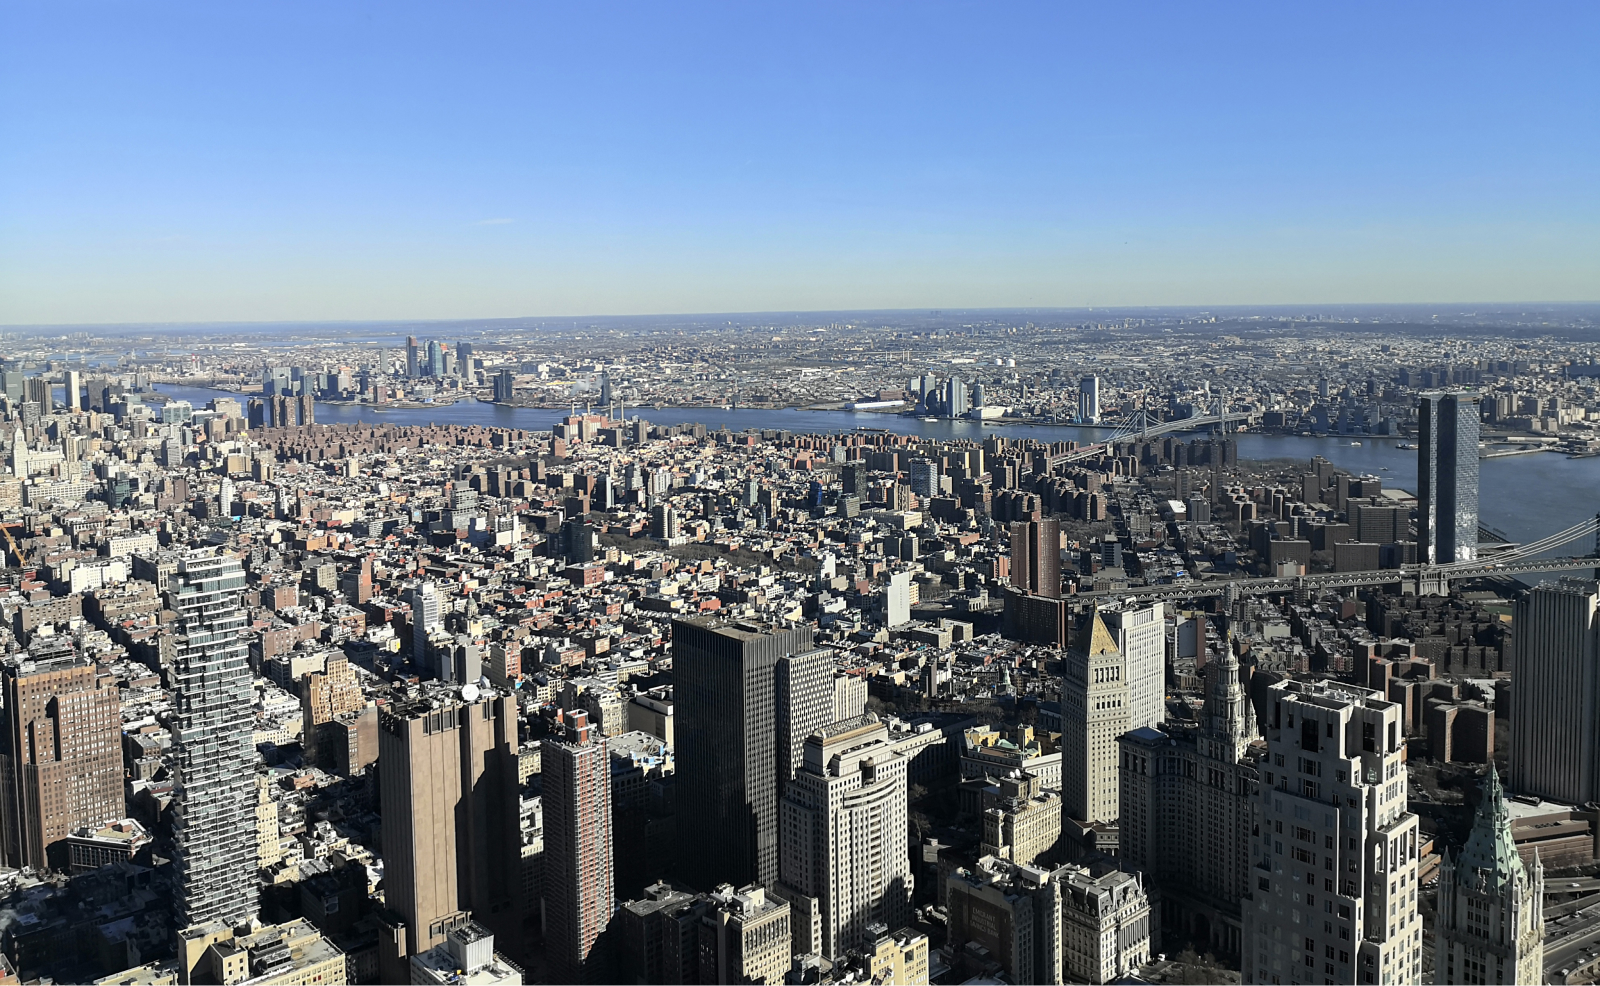 New York from the top of the One World Trade Center.